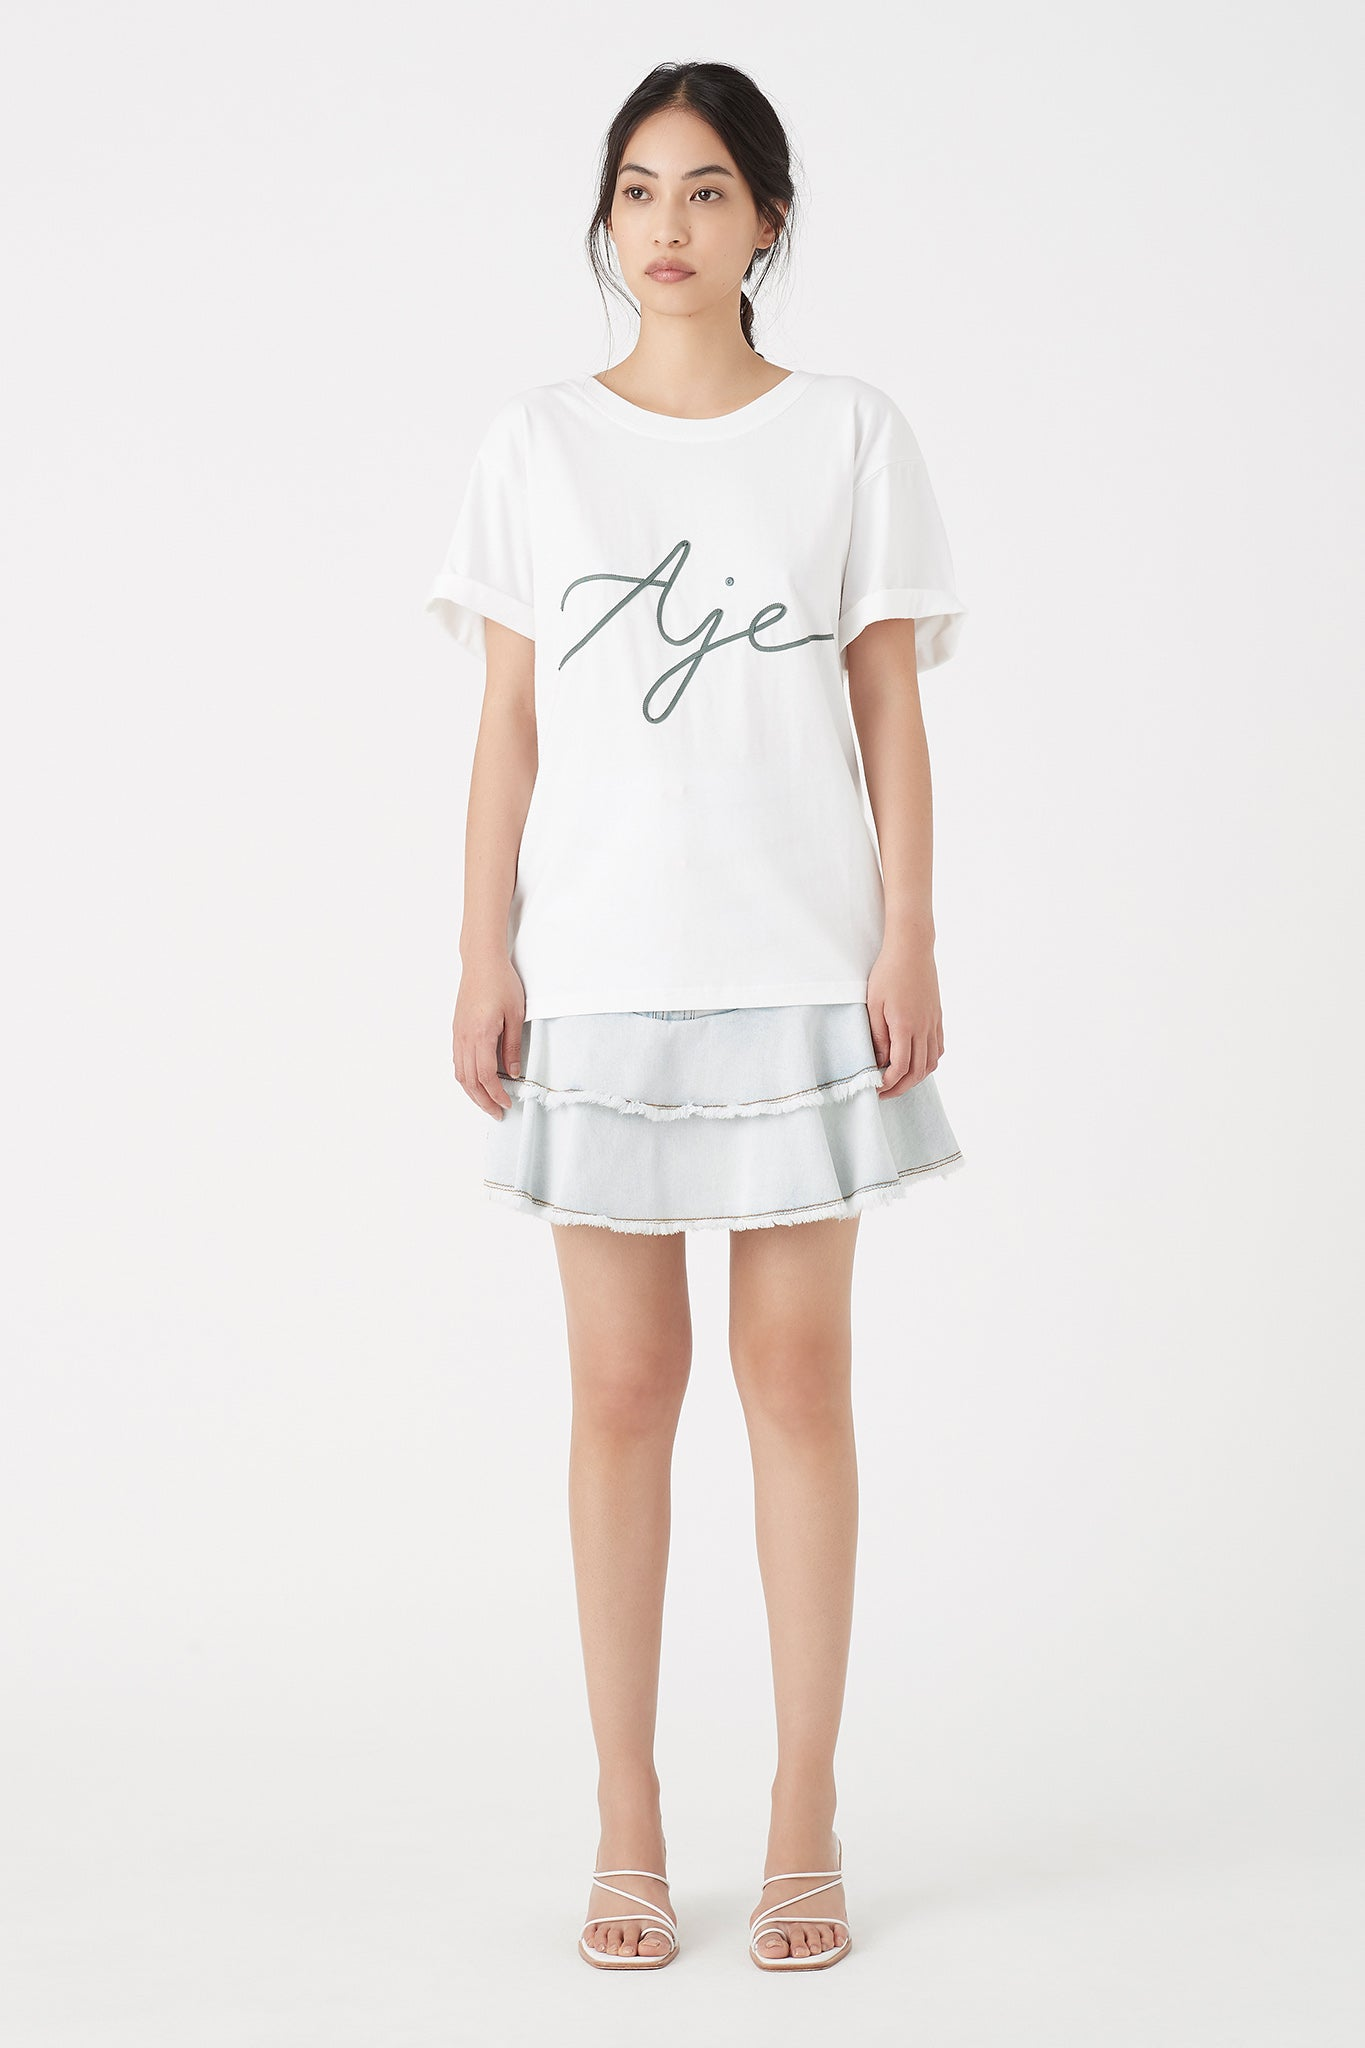 Aje Ribbon Tee Outfit View